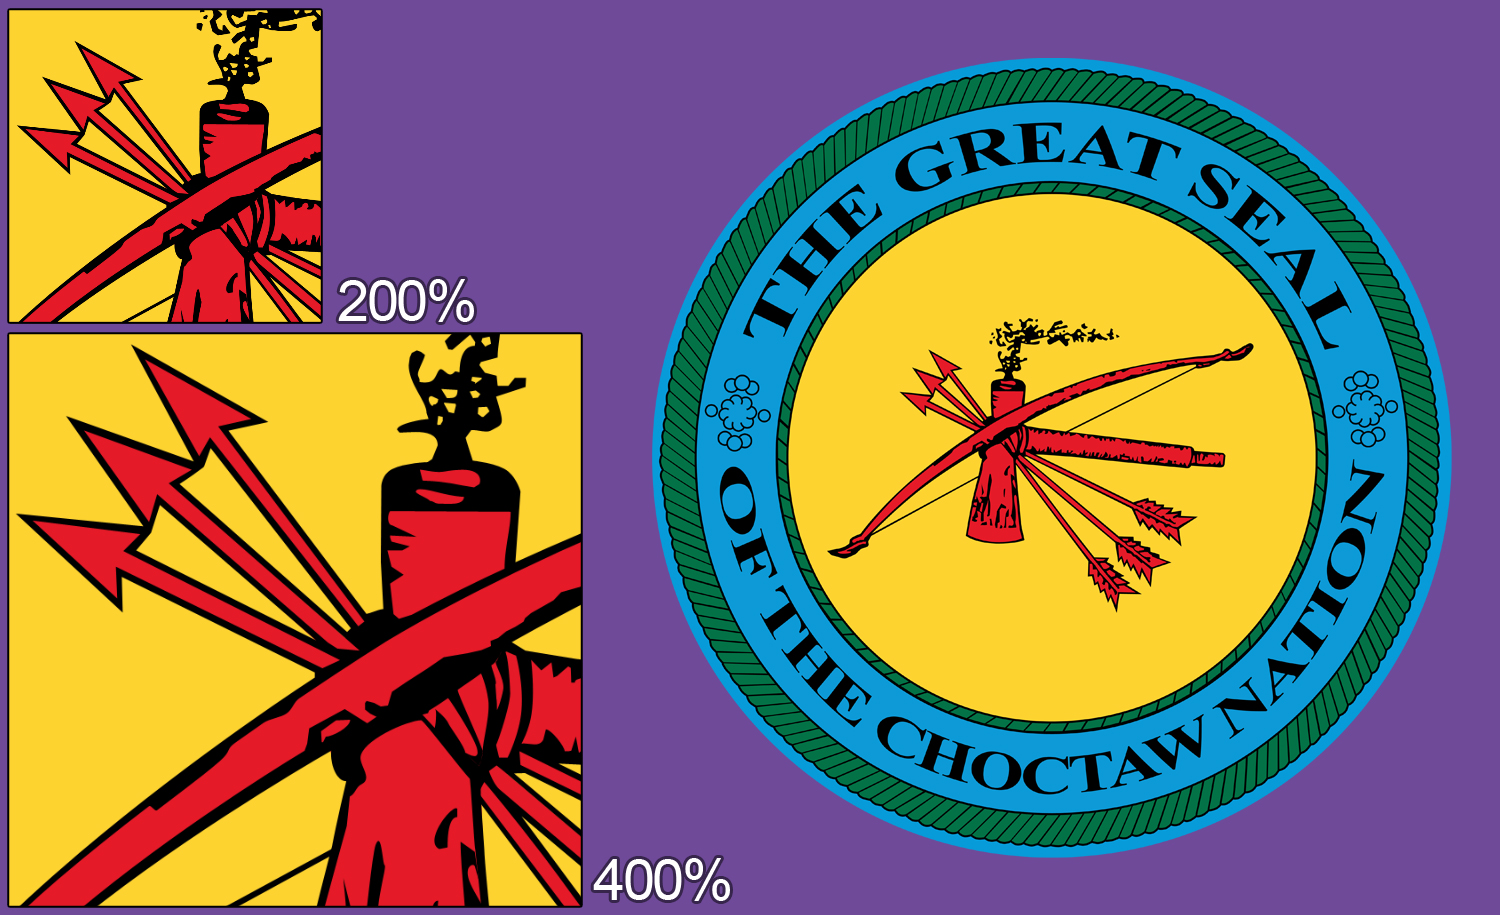 The Great Seal of the Choctaw Nation by RefineDesigns on